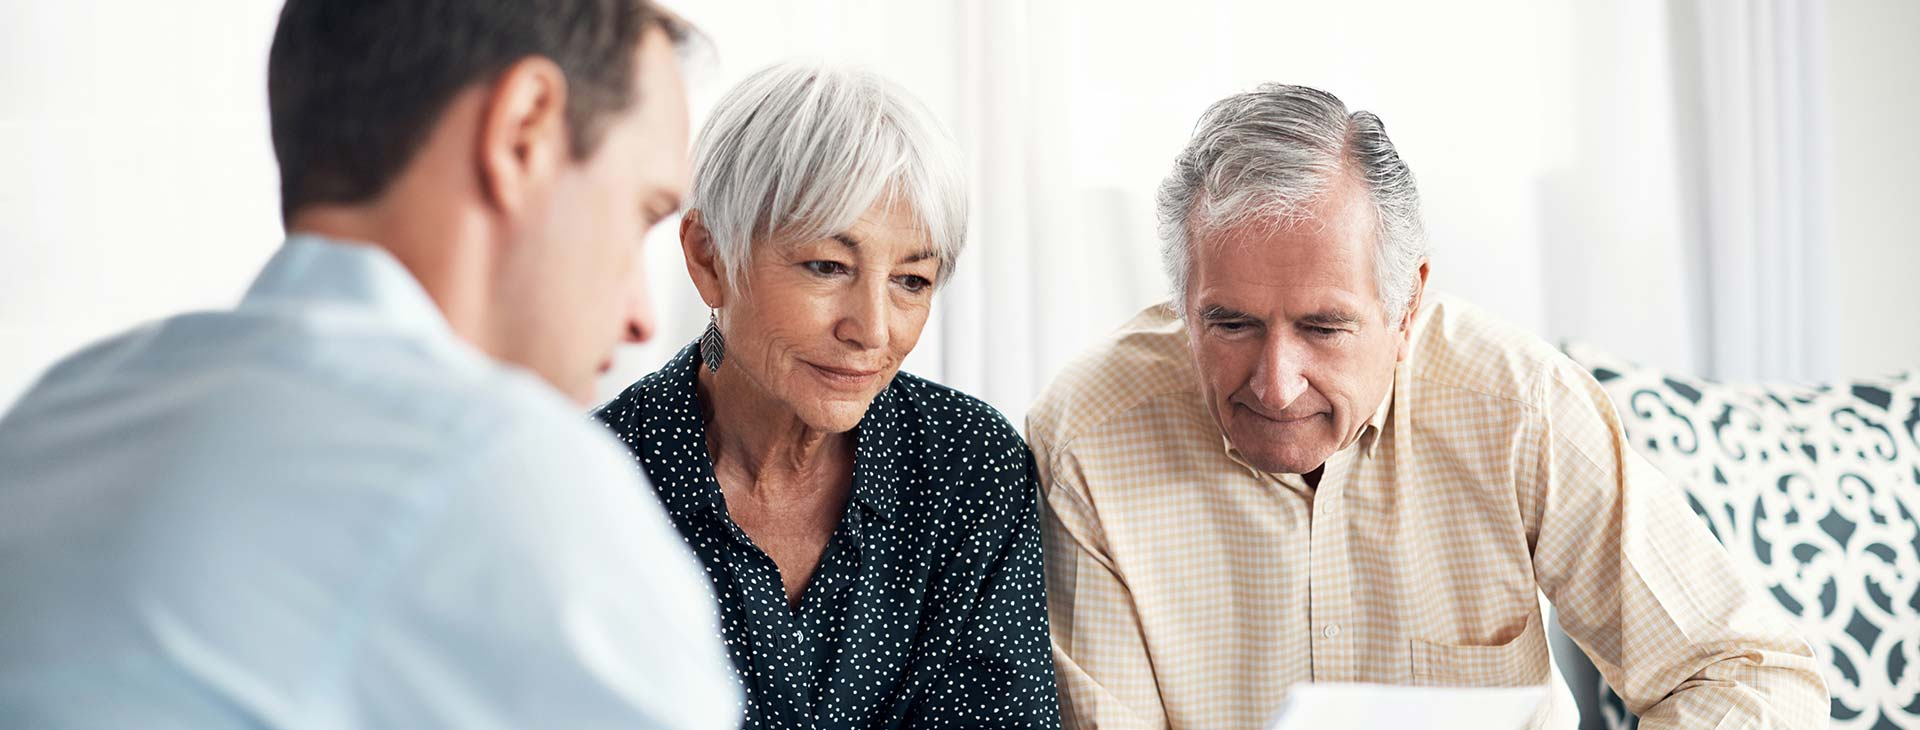 Mature couple discussing options with reputable kitchen company designer